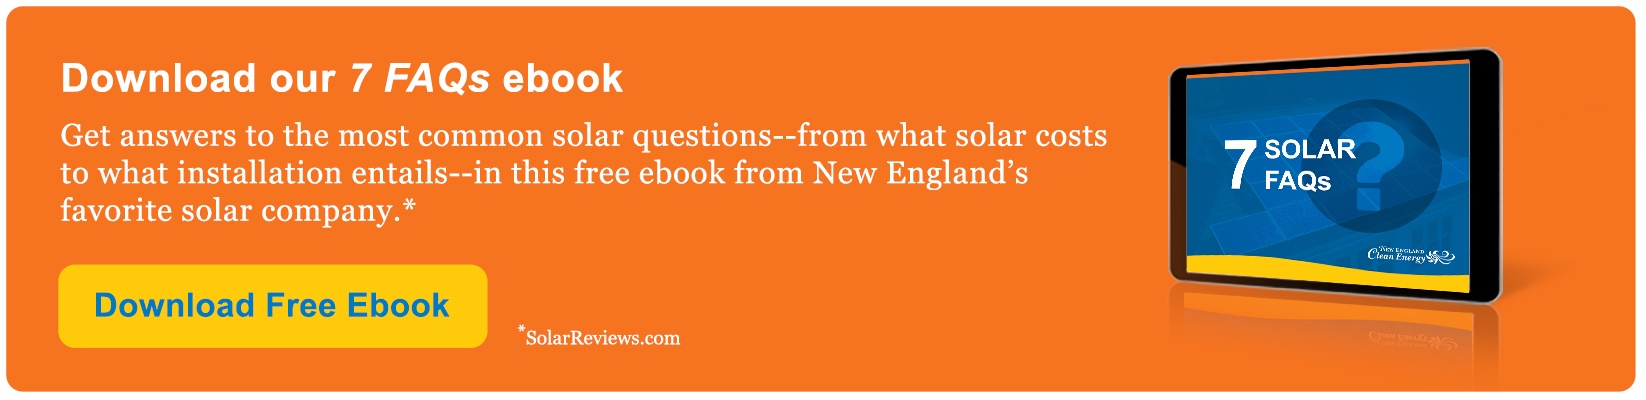 Download our 7 FAQs ebook to get answers to the most common solar questions in this free ebook from New England's favorite solar company.